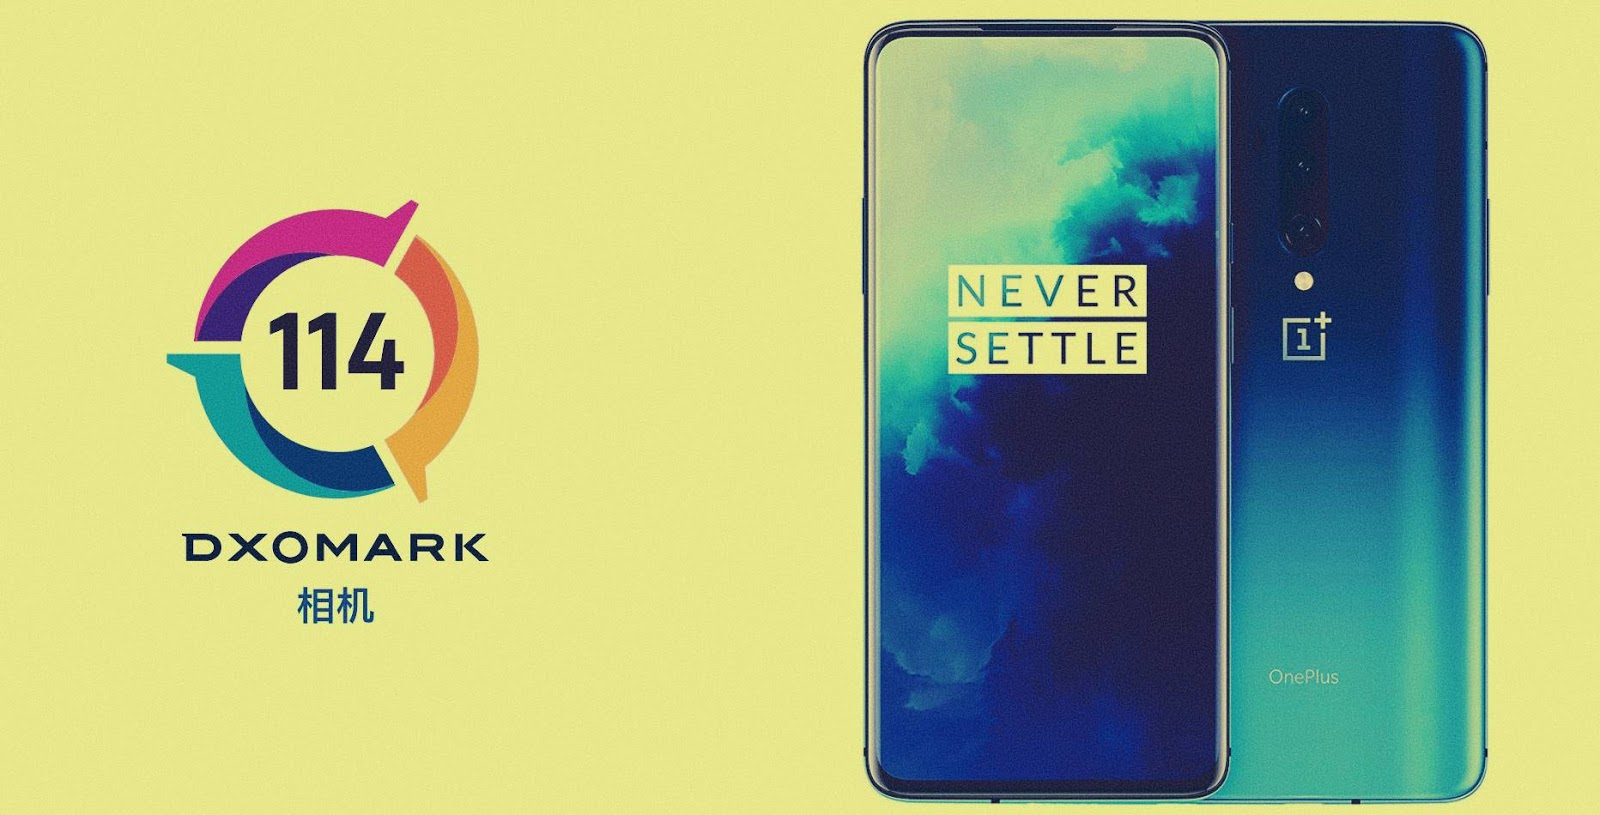 OnePlus 7T and 7T Pro received the latest version of OxygenOS